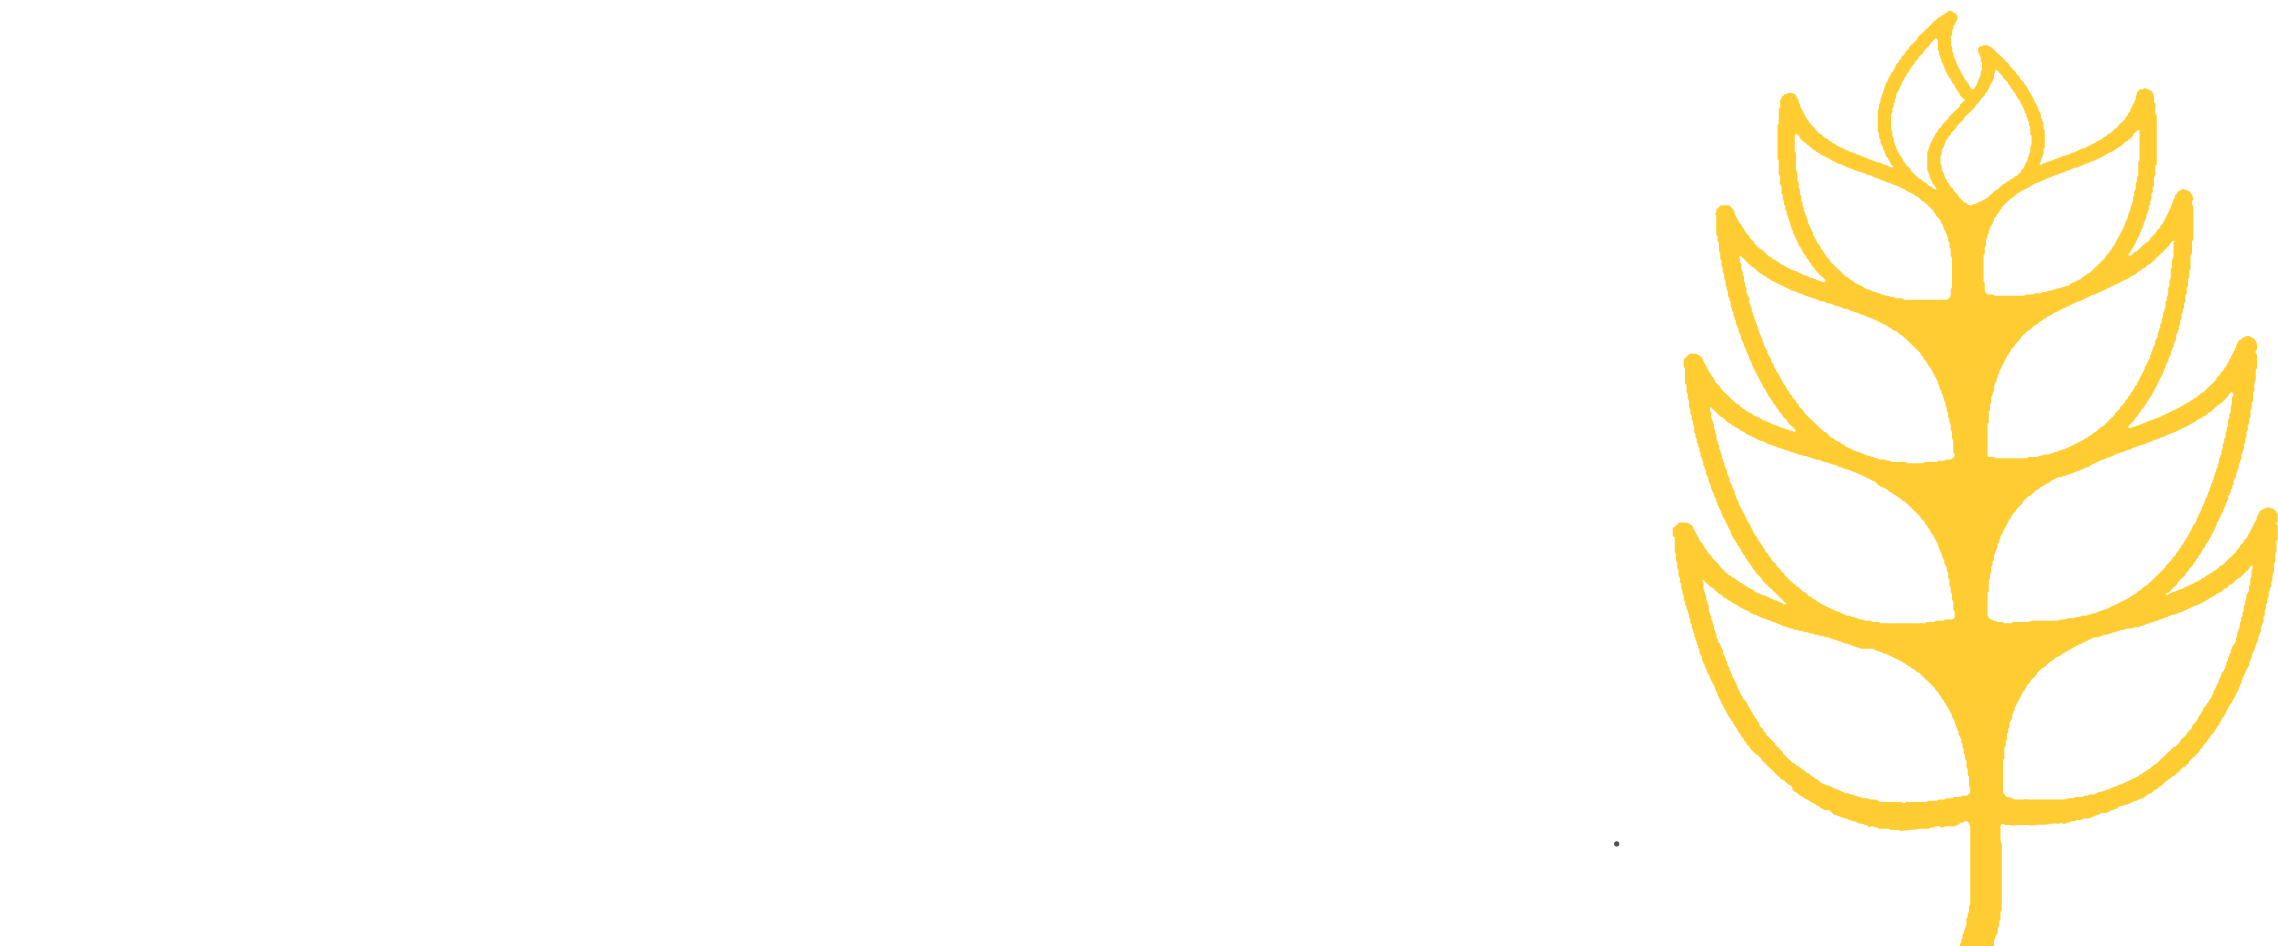 FLBCwLOGOWHTFONT.png